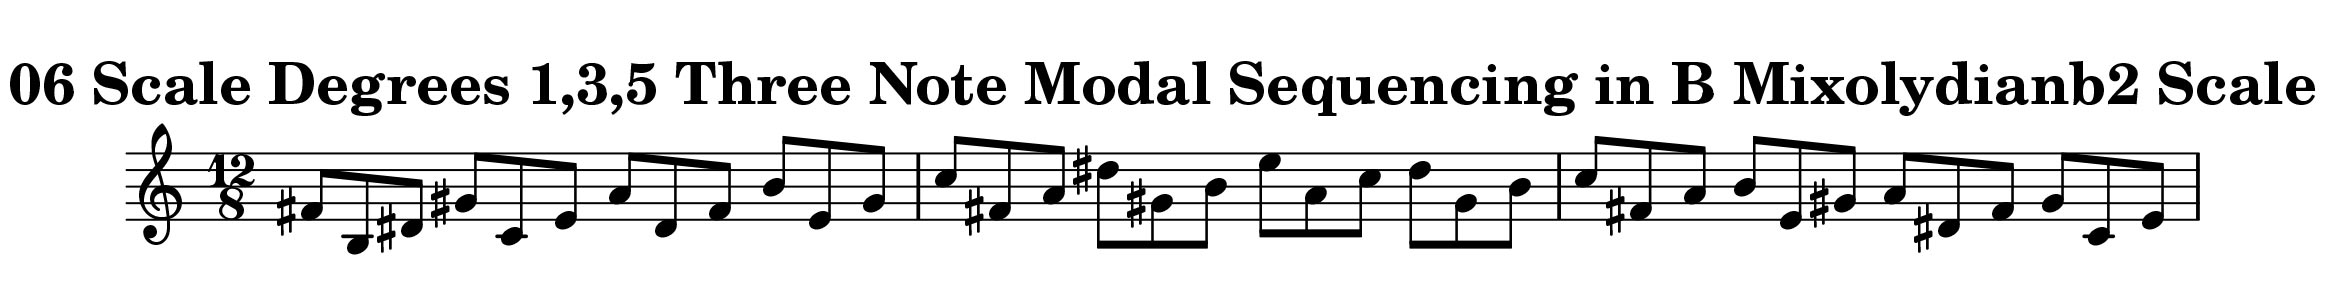 B Mixolydian b2 Scale Modal Sequencing 3 Note Group 3 for all instrumentalist by Bruce Arnold for Muse Eek Publishing Company